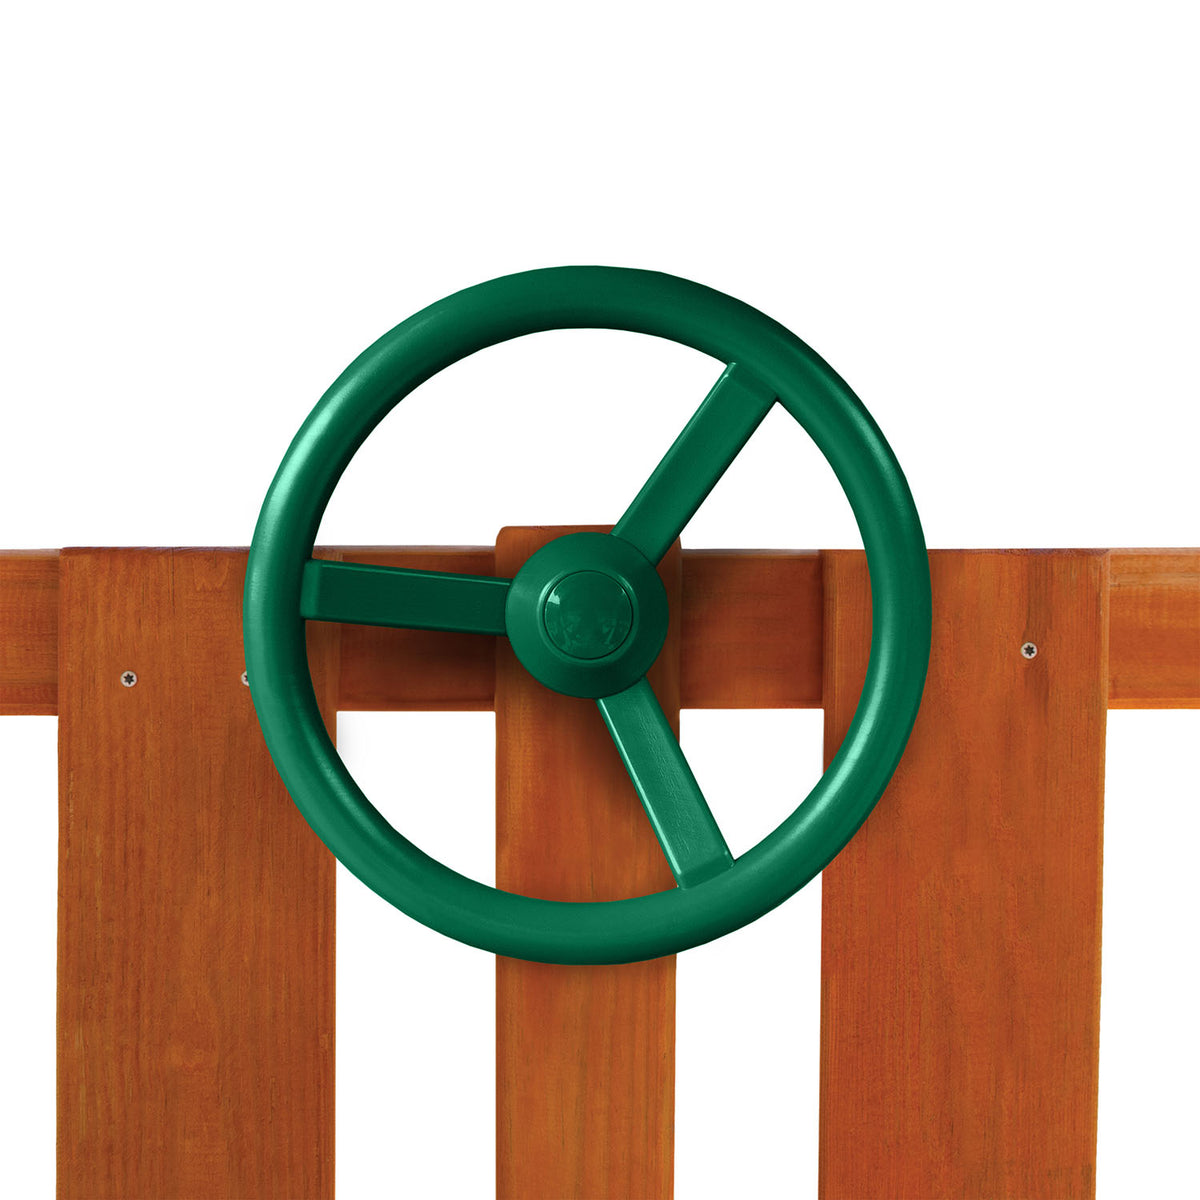 Gorilla-Playsets-Steering-Wheel-Green-Installed-White-Back